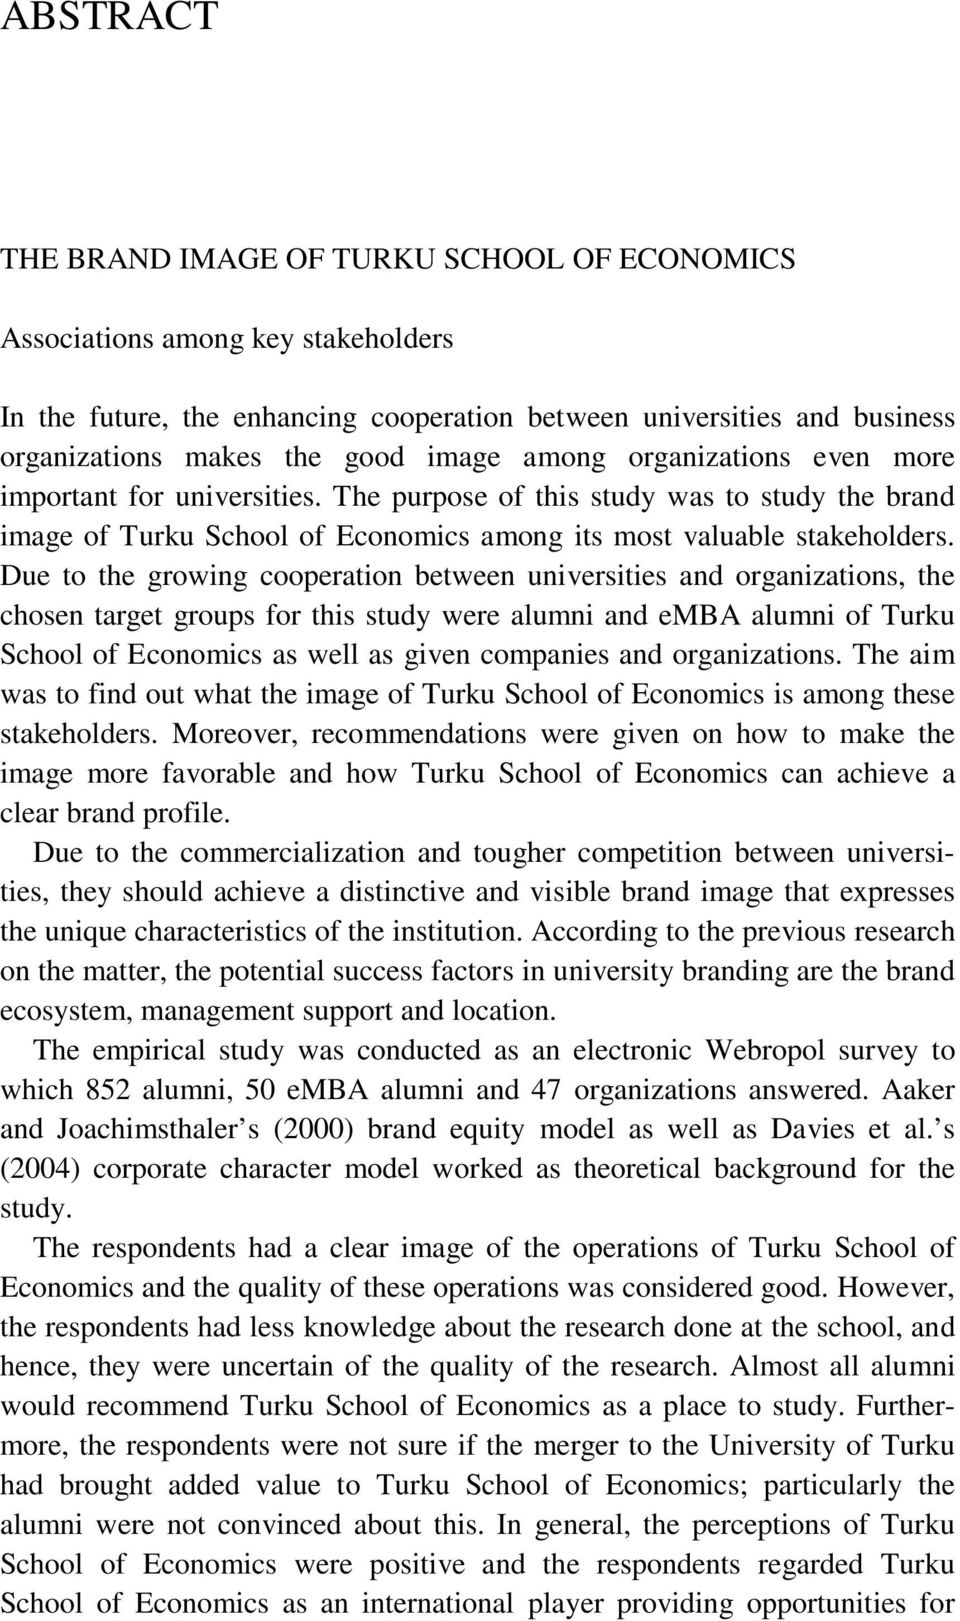 Due to the growing cooperation between universities and organizations, the chosen target groups for this study were alumni and emba alumni of Turku School of Economics as well as given companies and